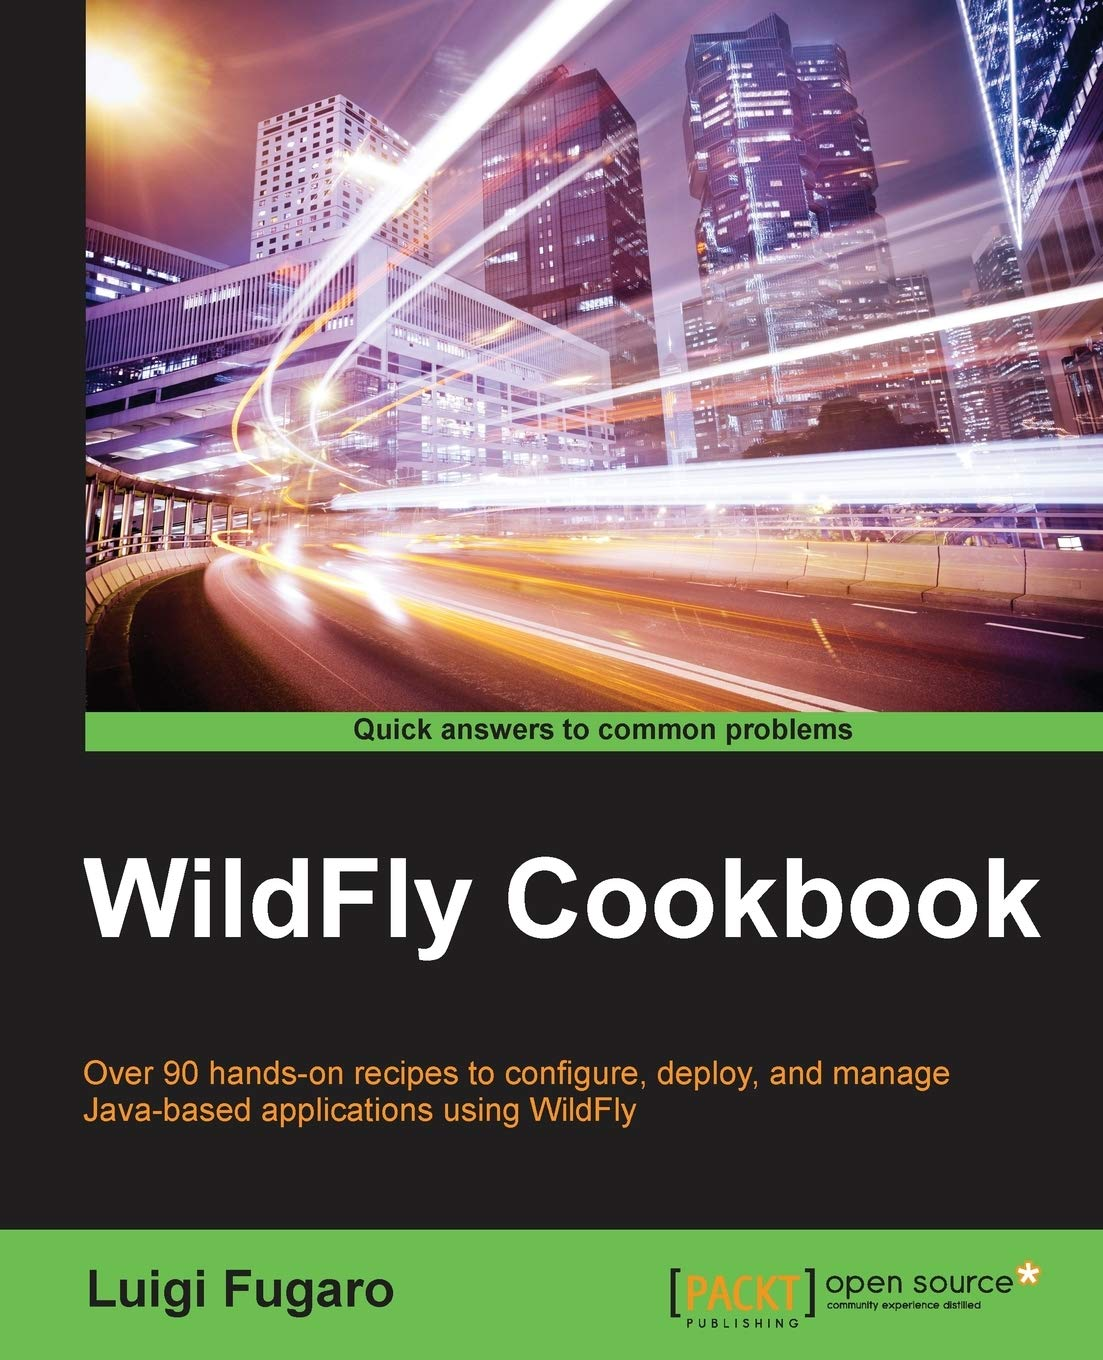 WildFly Cookbook: Luigi Fugaro: 9781784392413: Amazon.com: Books